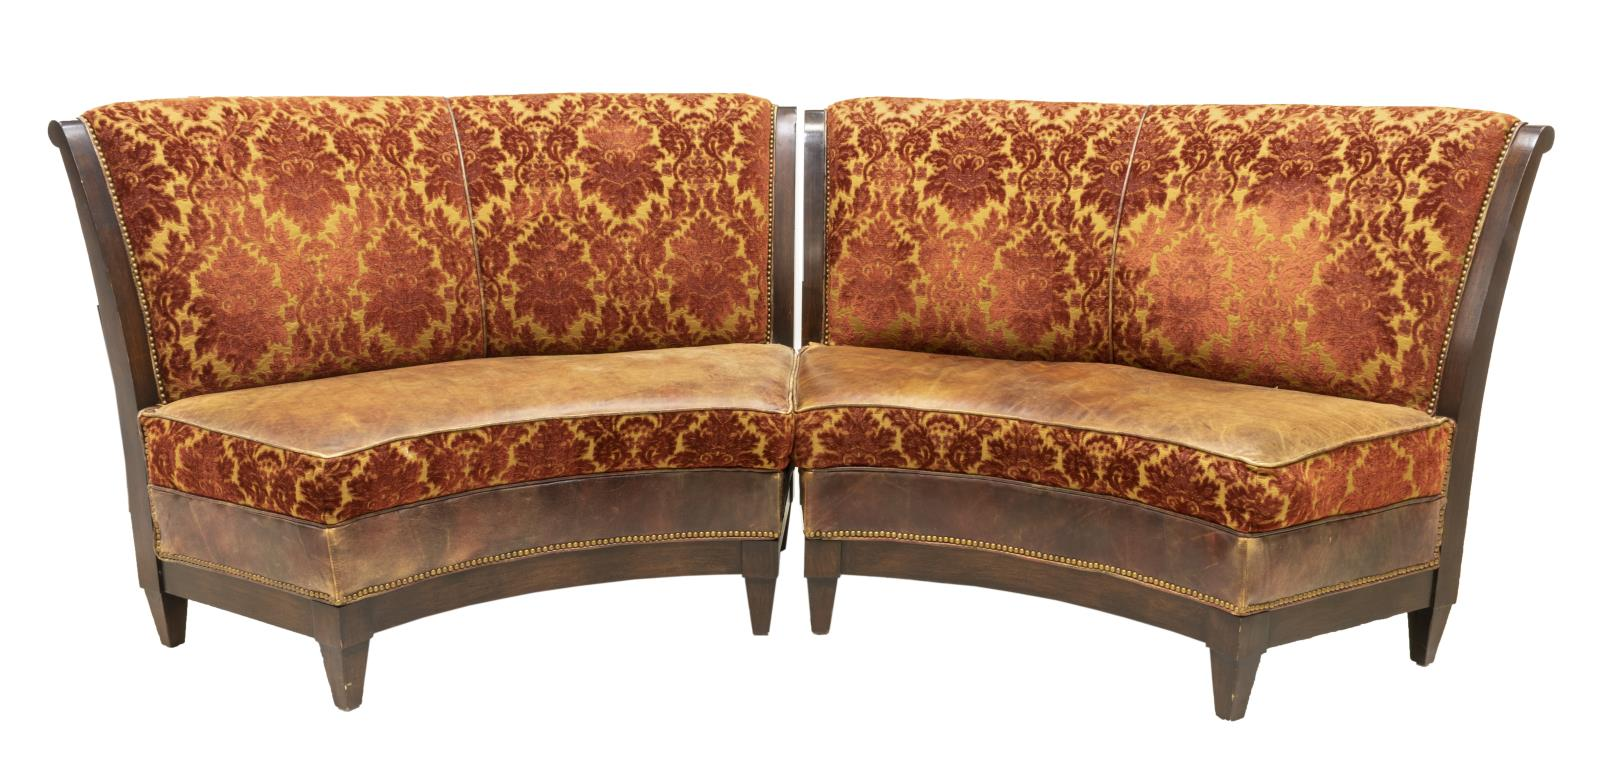 (2) UPHOLSTERED CURVED BANQUETTE BENCHES - November 3 Day ...